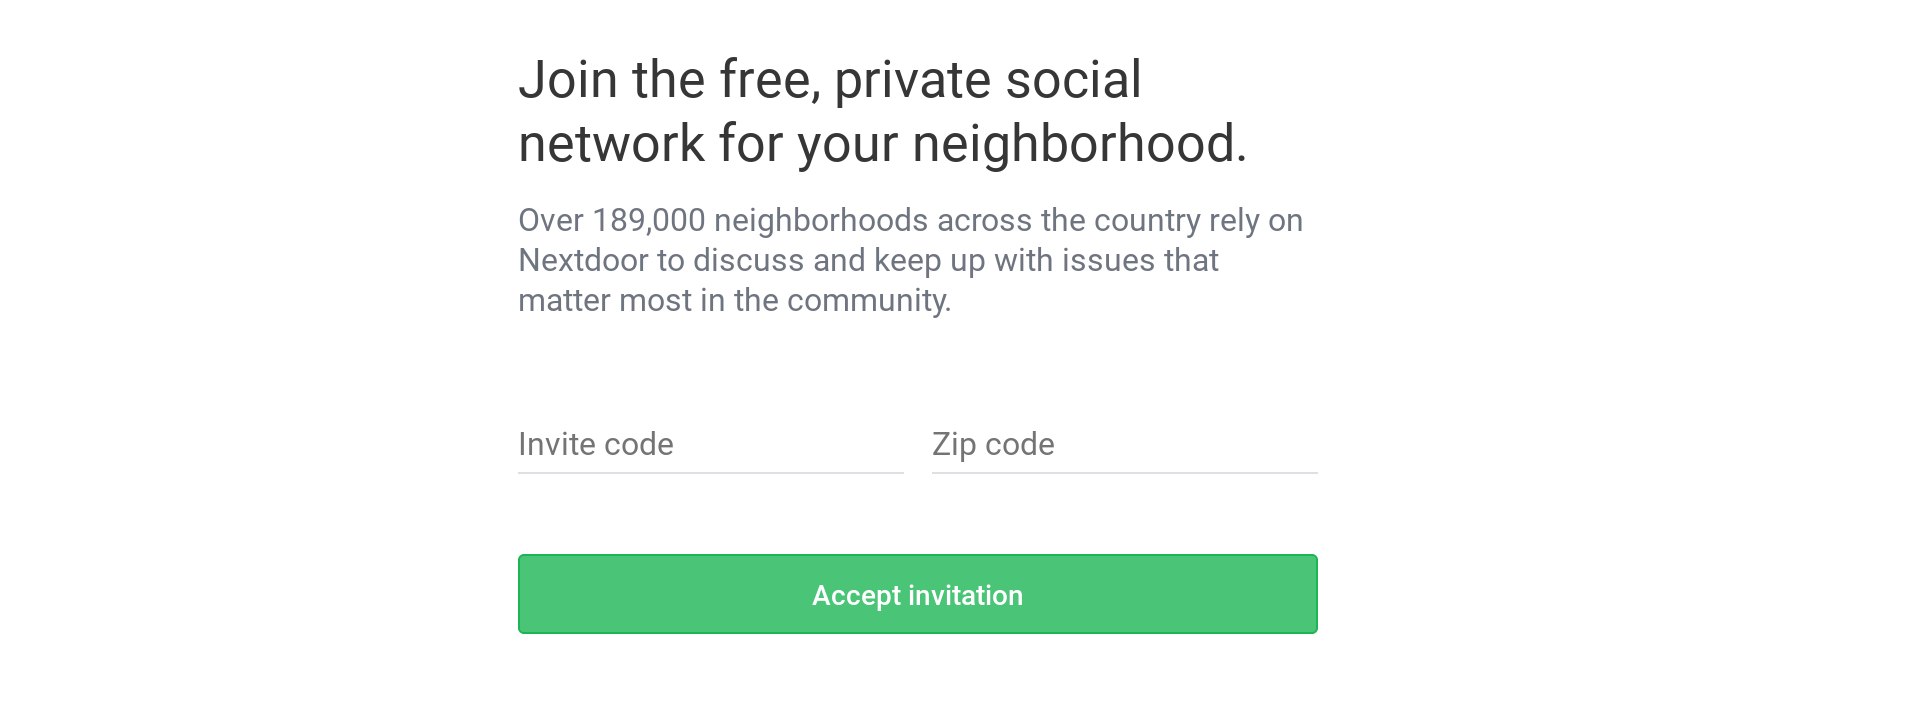 www.nextdoor.com/join invite code